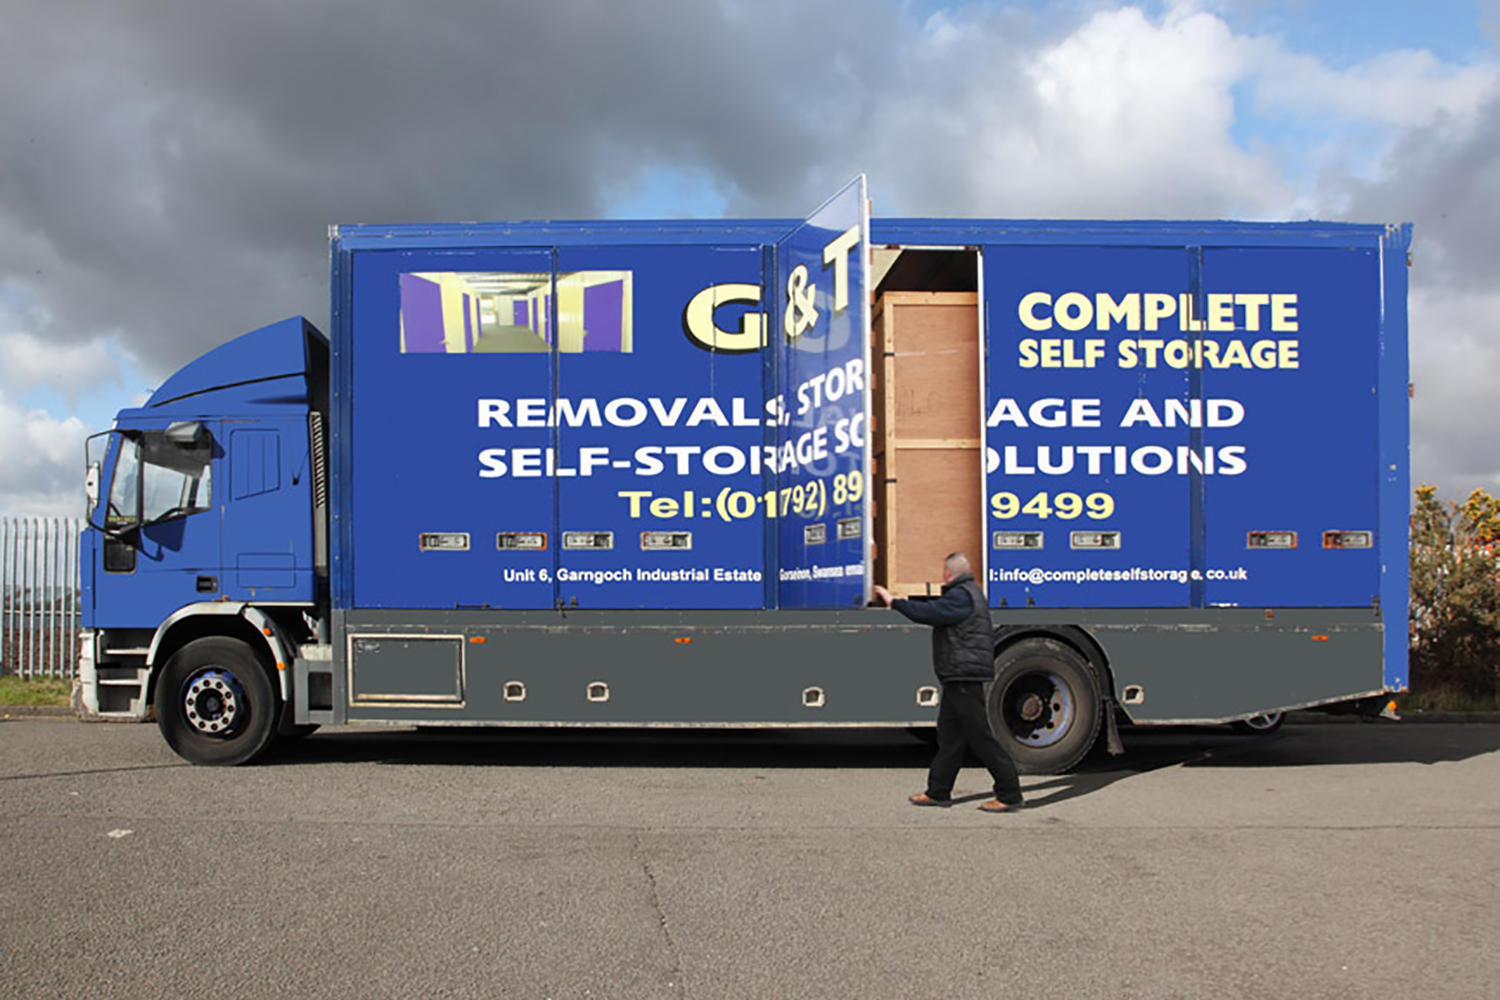 G & T Complete Self Storage, Swansea.